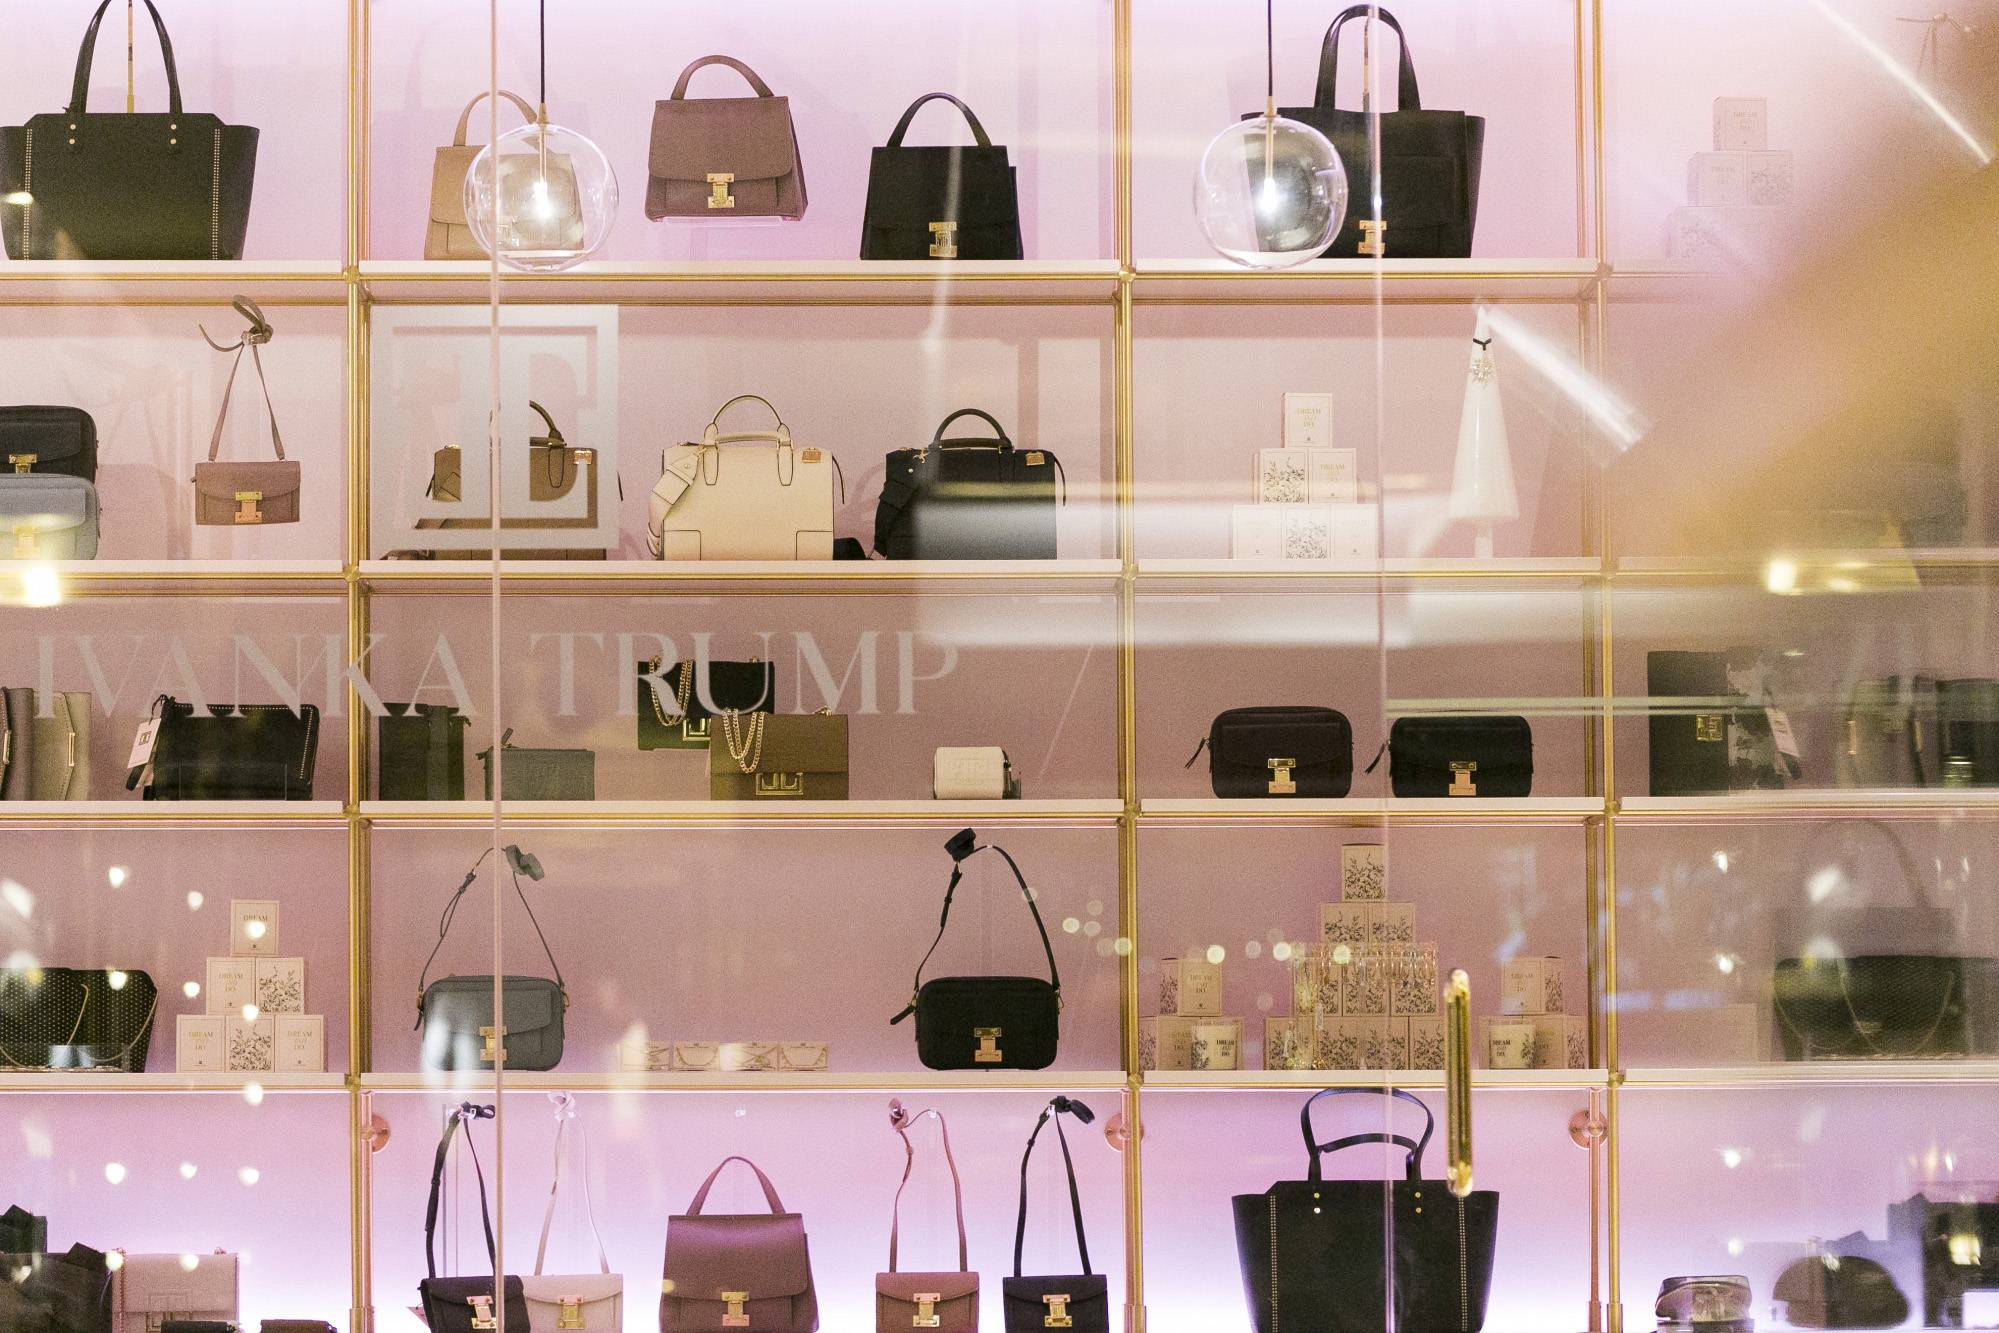 Handbags sit on display inside an Ivanka Trump brand store at Trump Tower in New York on Dec. 14, 2017.